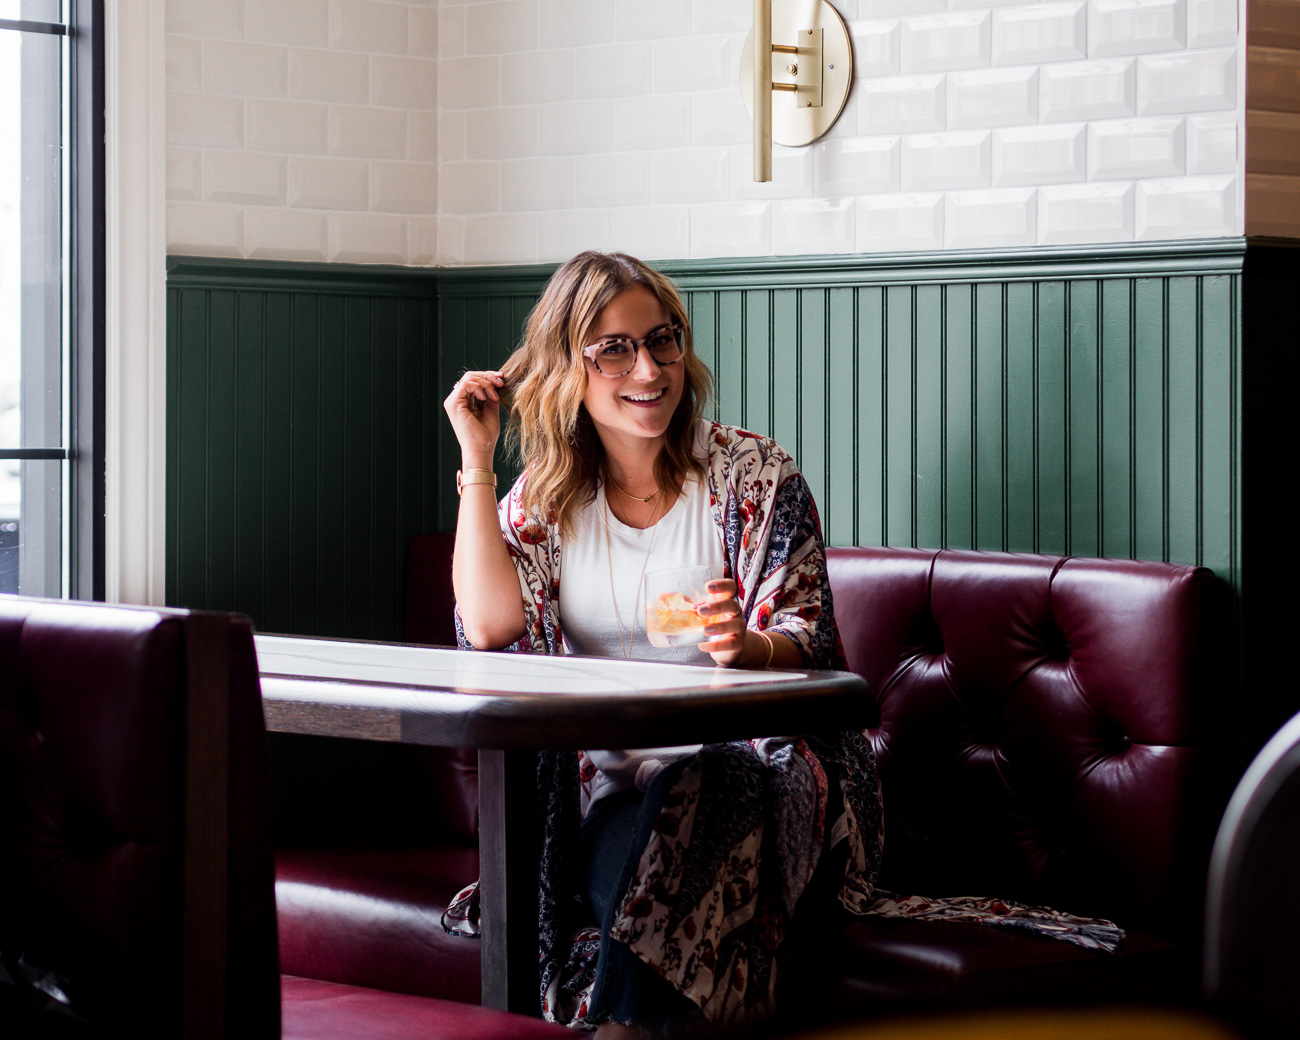 Toronto lifestyle and fashion blogger, Jackie Goldhar, from Something About That, at The Commoner Restaurant